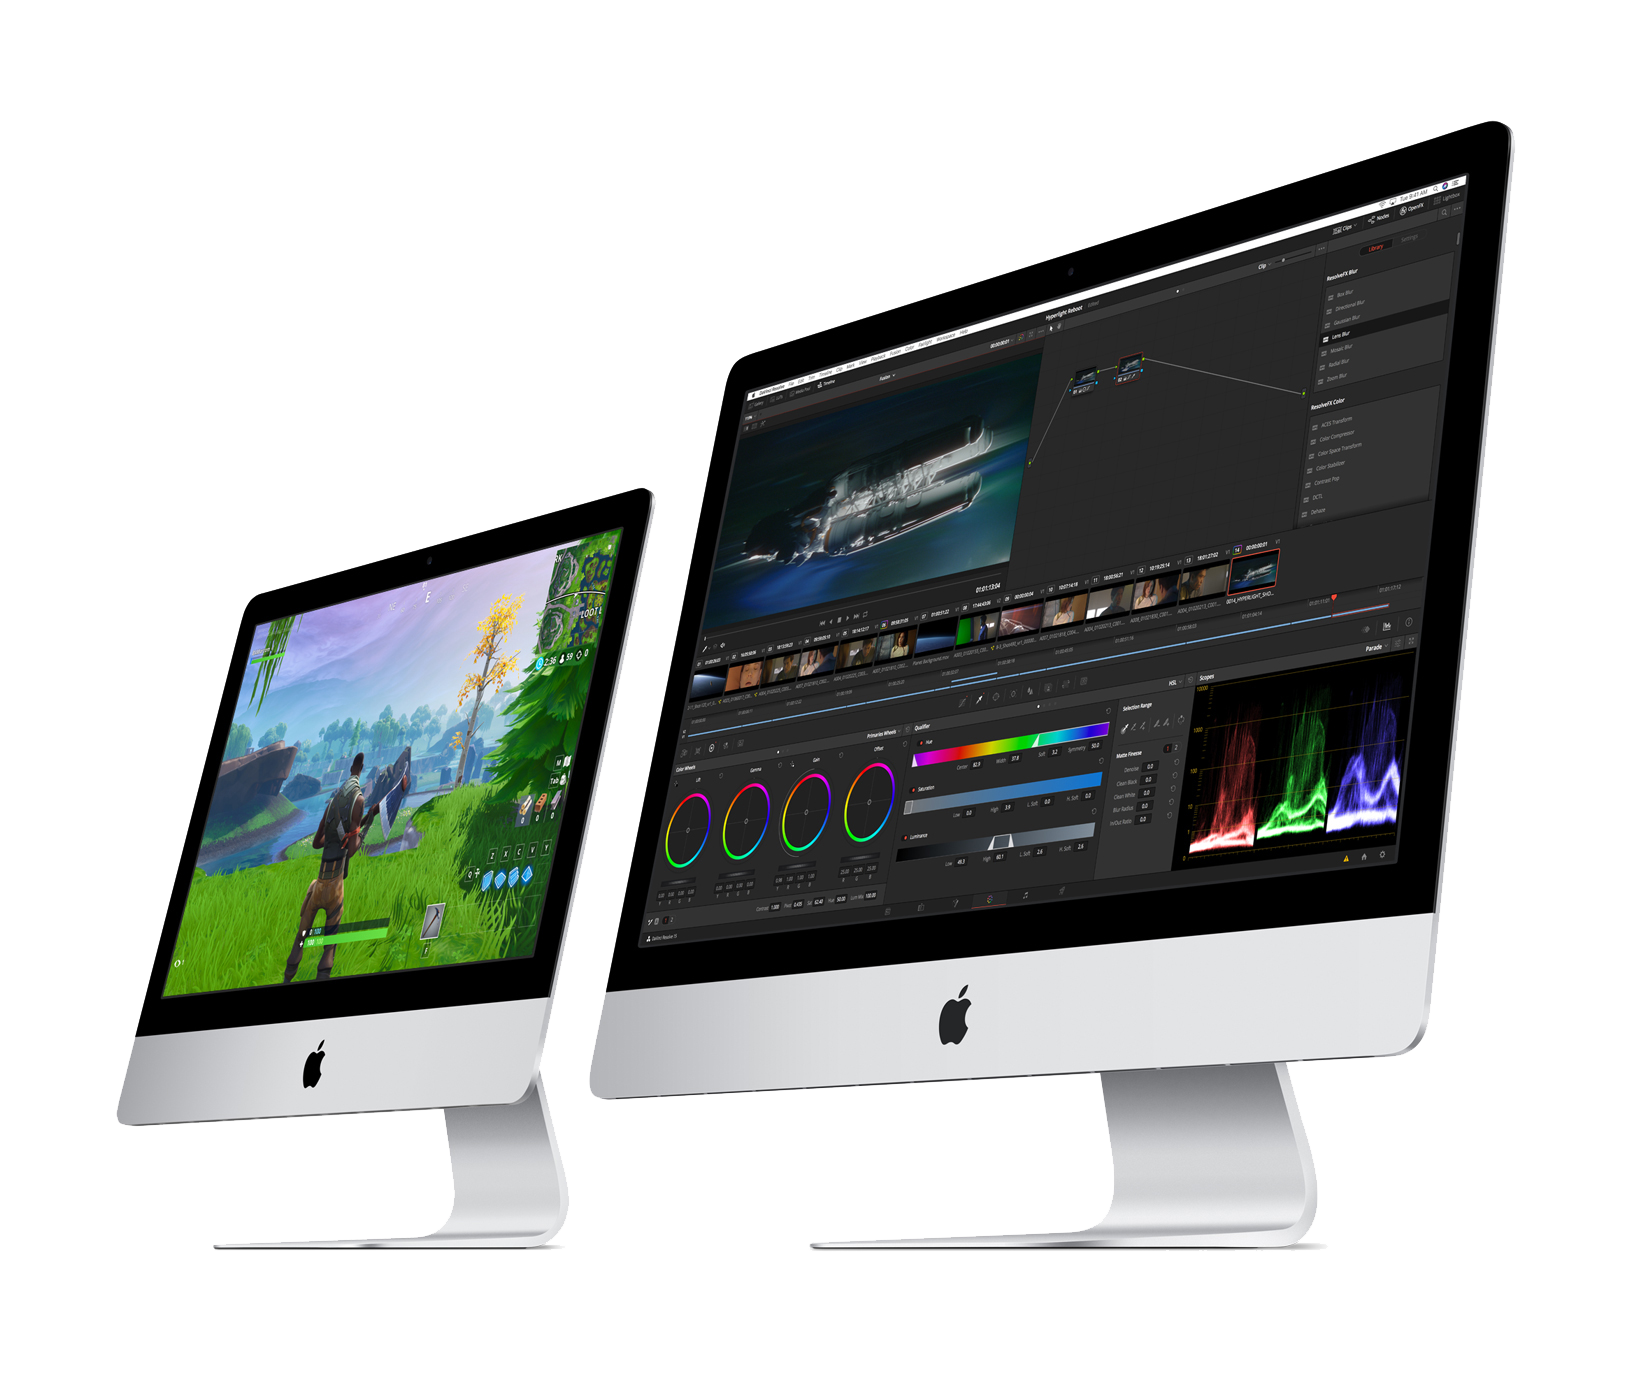 iMac 21.5-inch and 27-inch